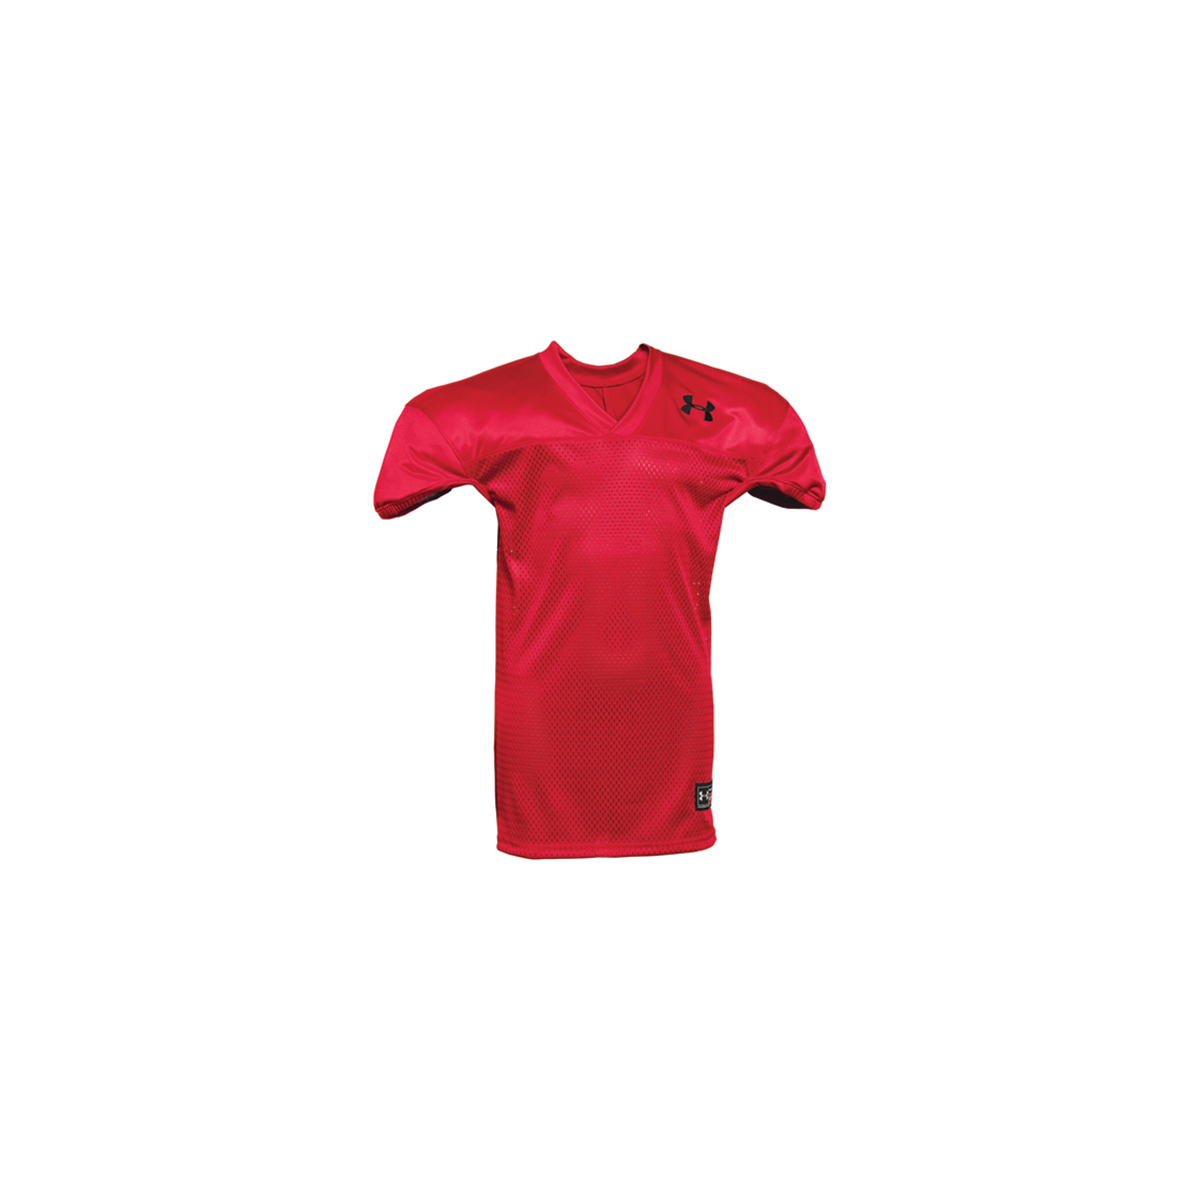 Youth Practice Football Jersey, Red/White, swatch